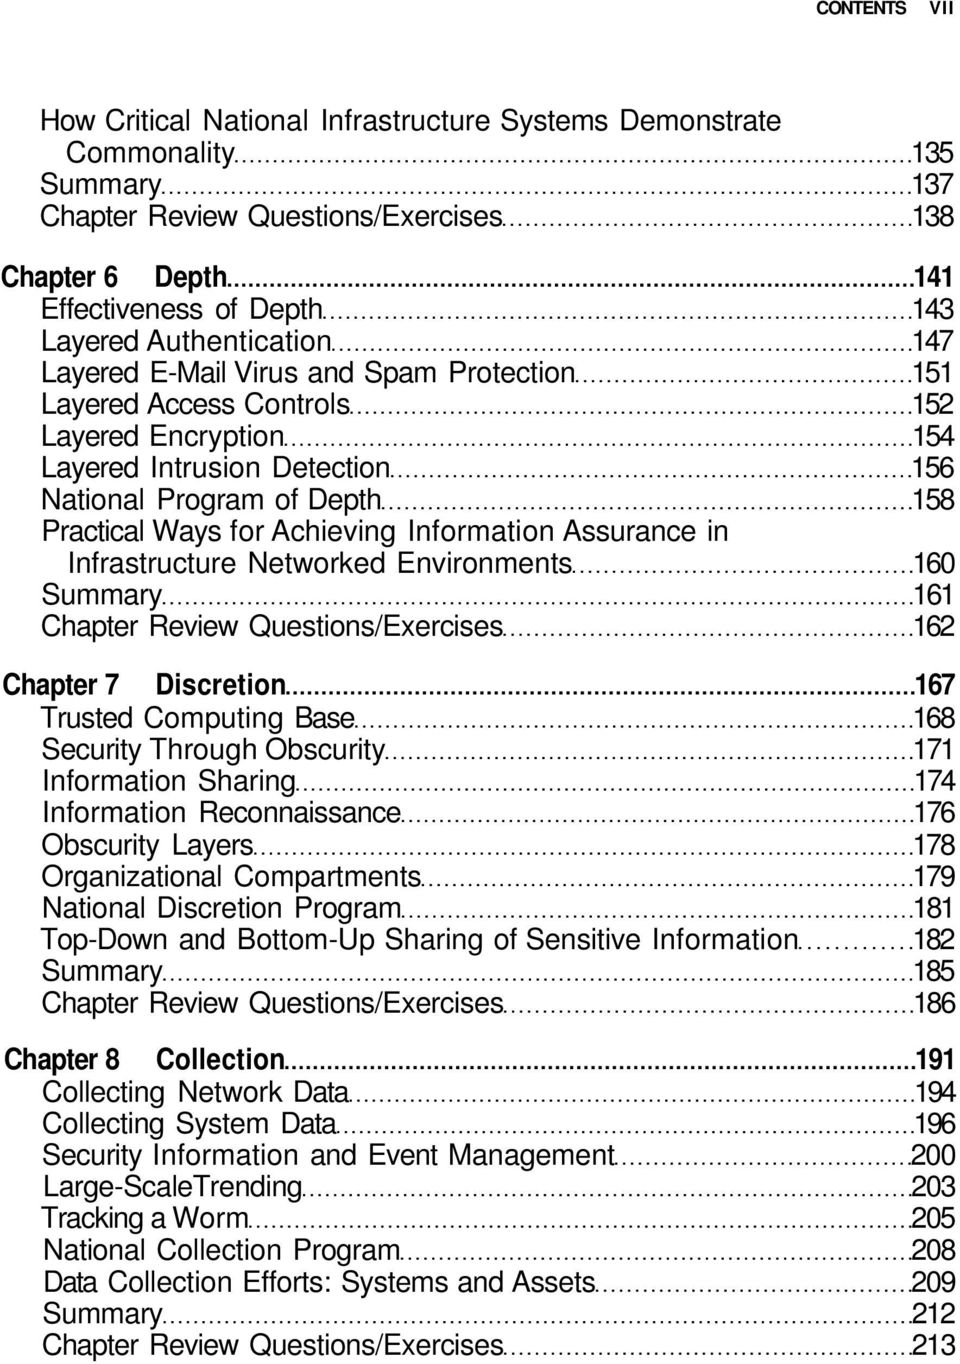 Achieving Information Assurance in Infrastructure Networked Environments 160 Summary 161 Chapter Review Questions/Exercises 162 Chapter 7 Discretion 167 Trusted Computing Base 168 Security Through